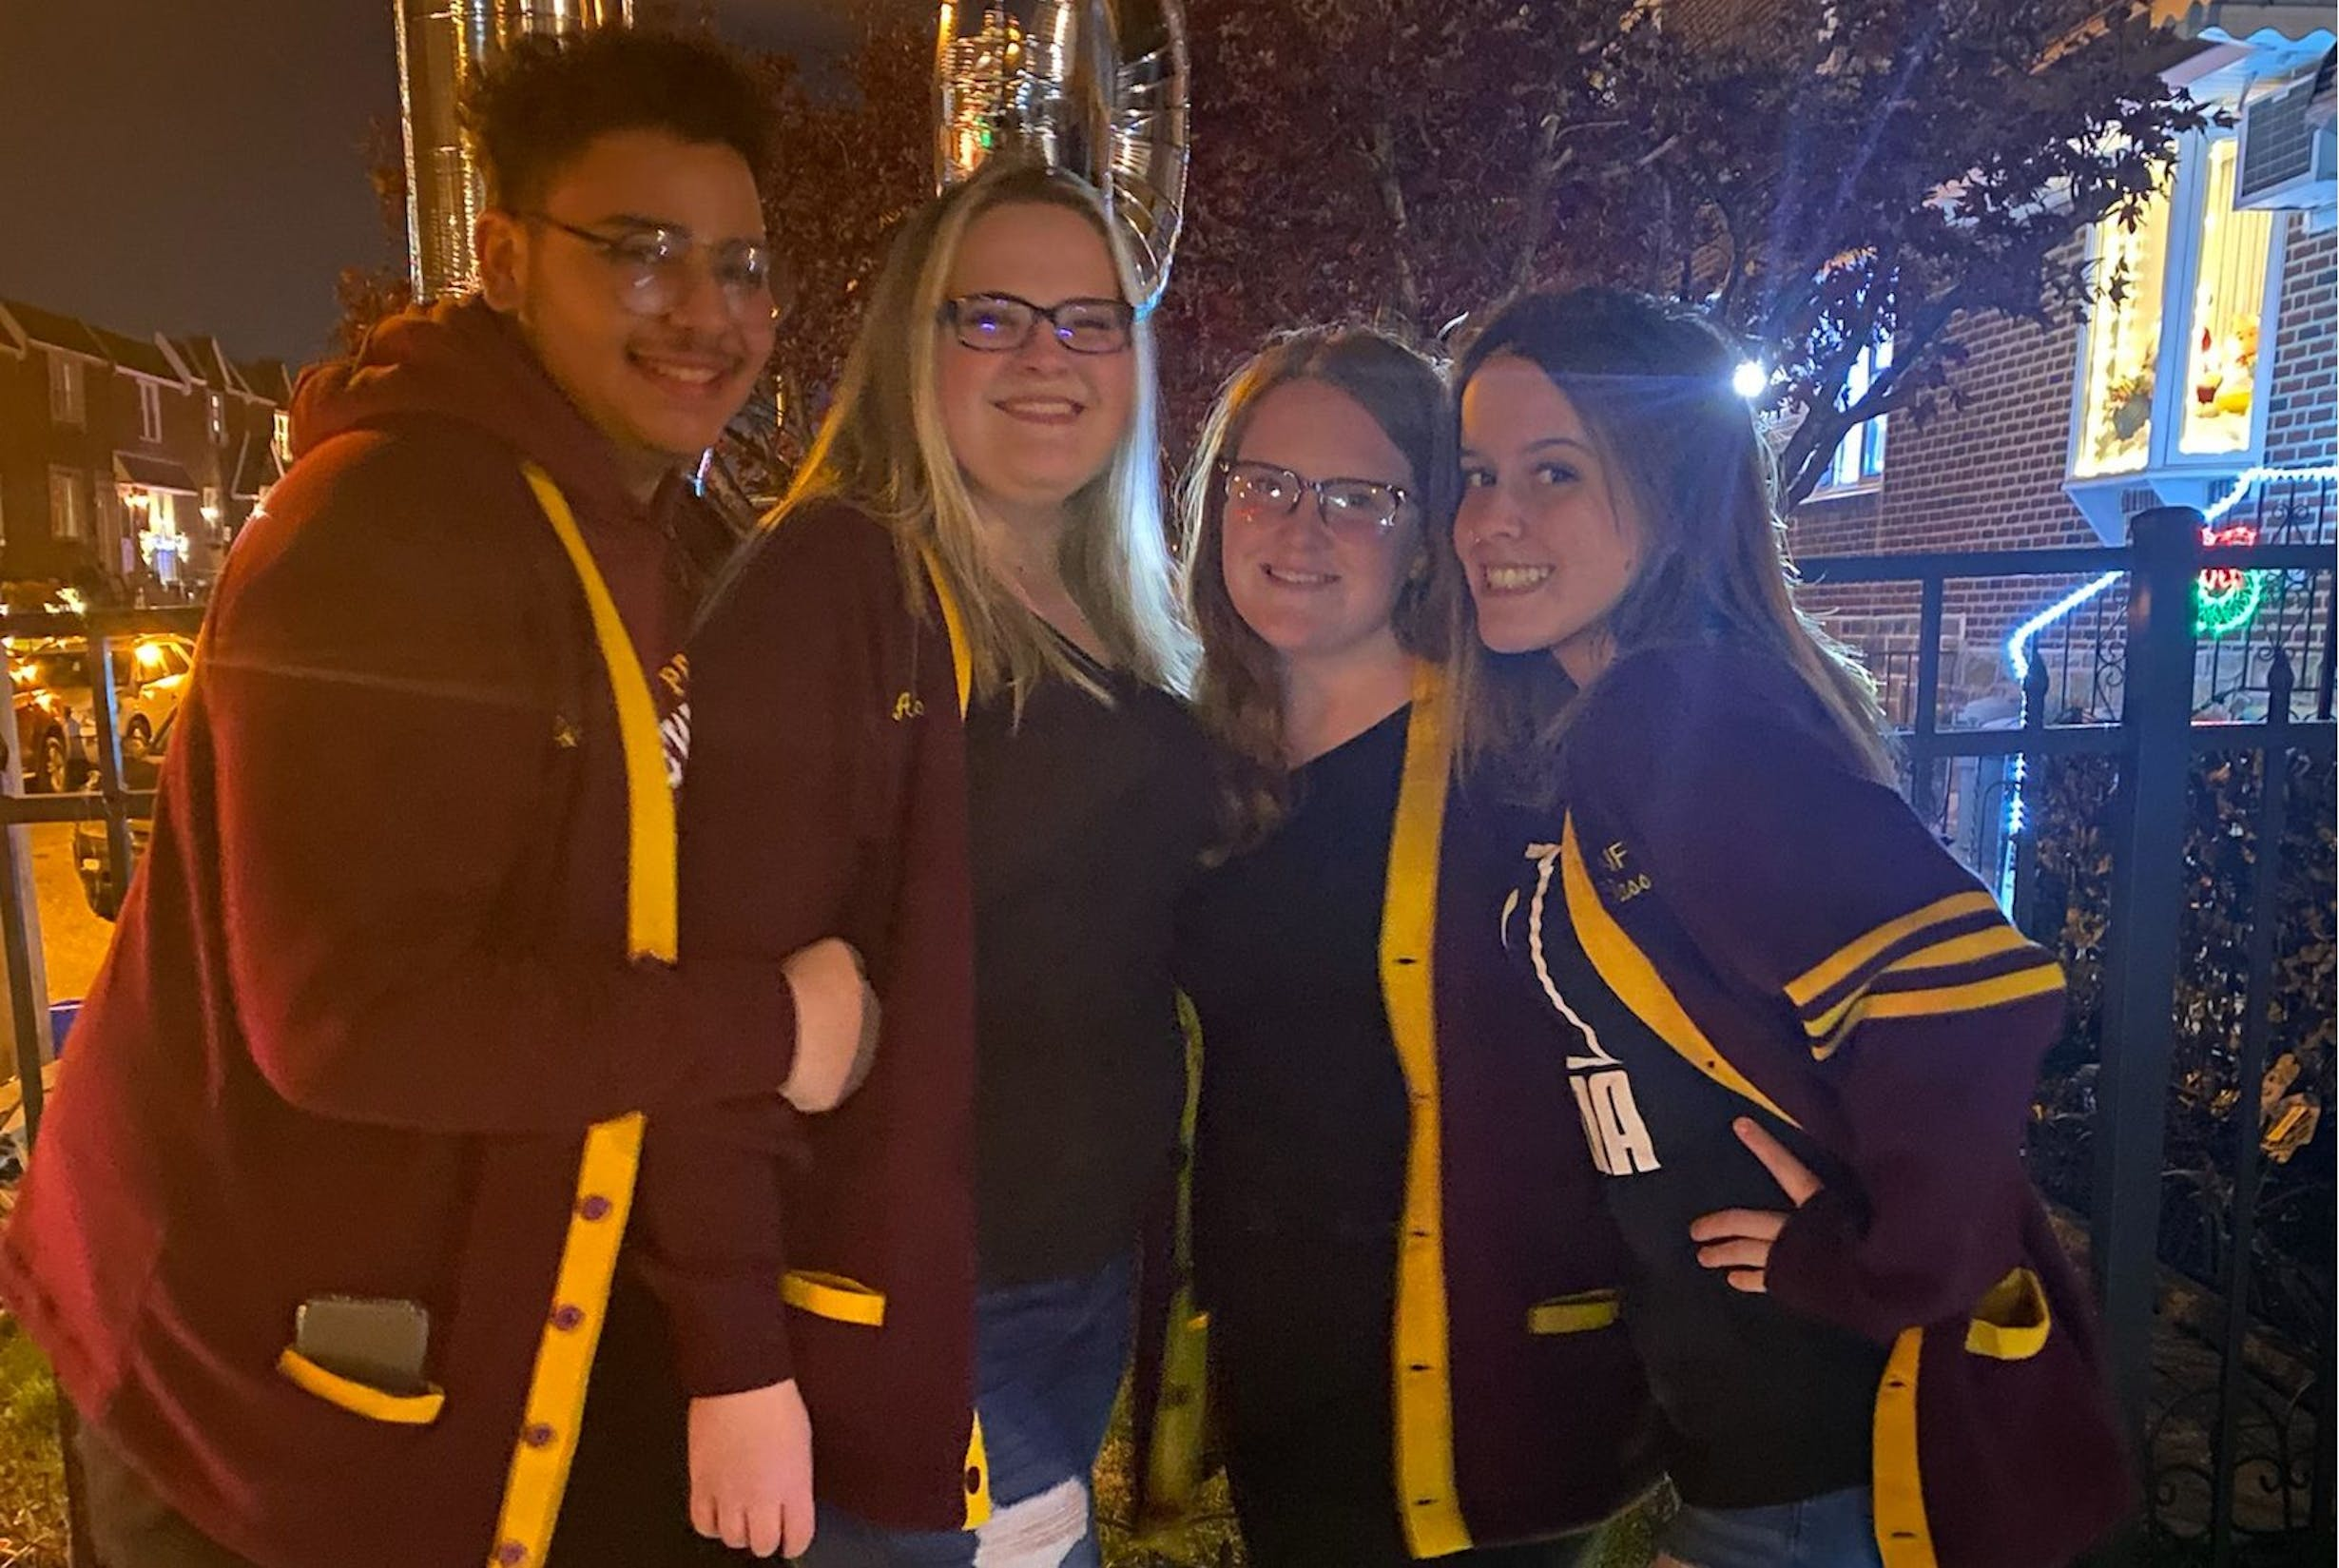 Four students pose outside in the evening wearing their senior New Foundations sweaters